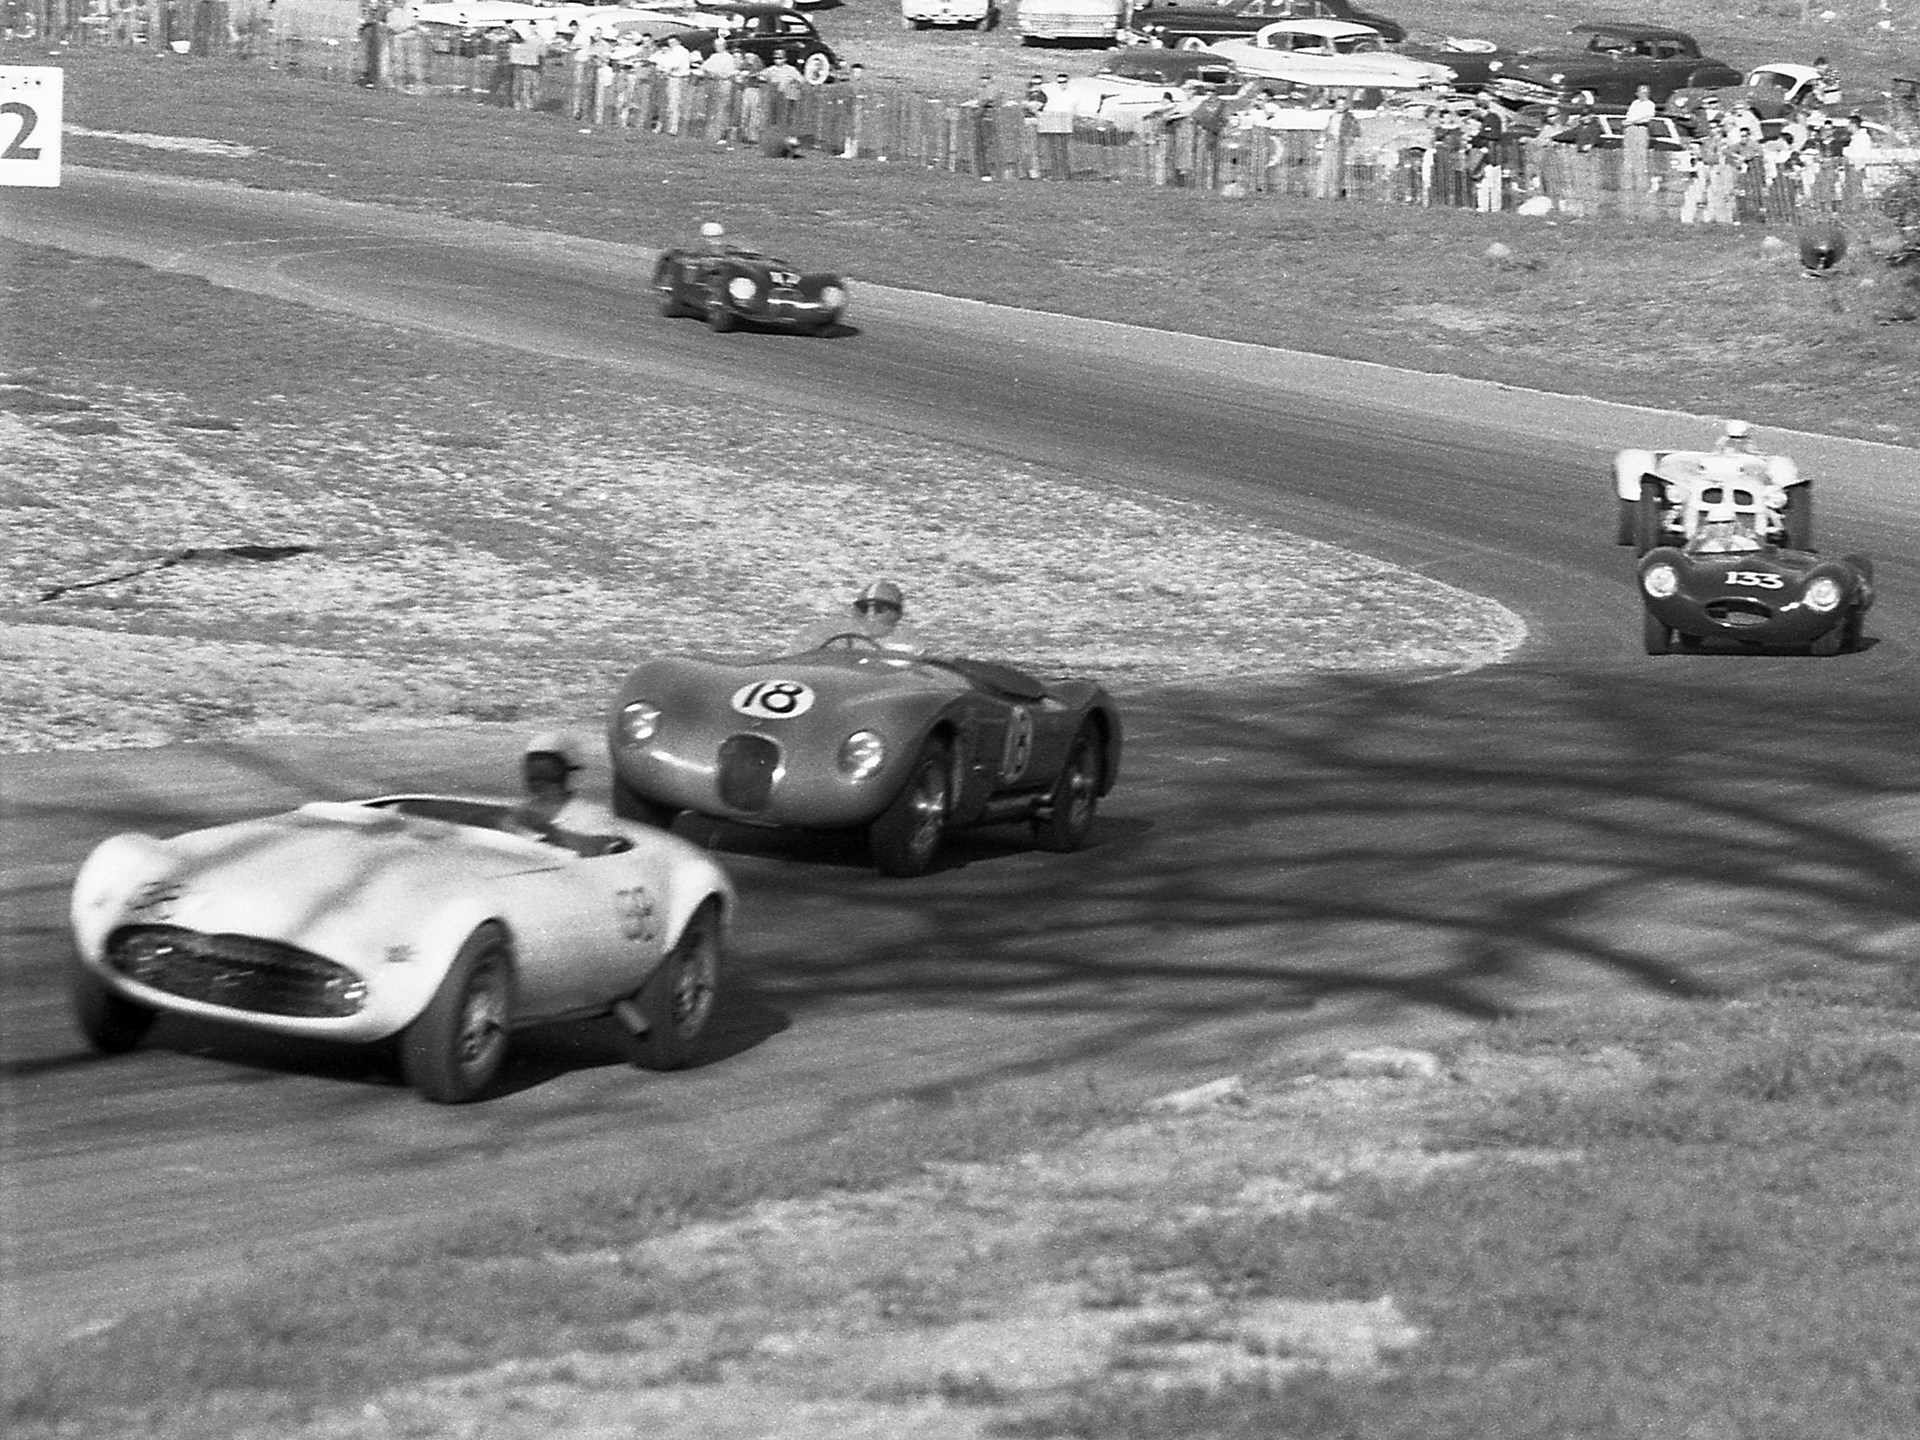 XKC 007 powers up the hill at Paramount Ranch on March 10, 1957 where it finished 7th overall.